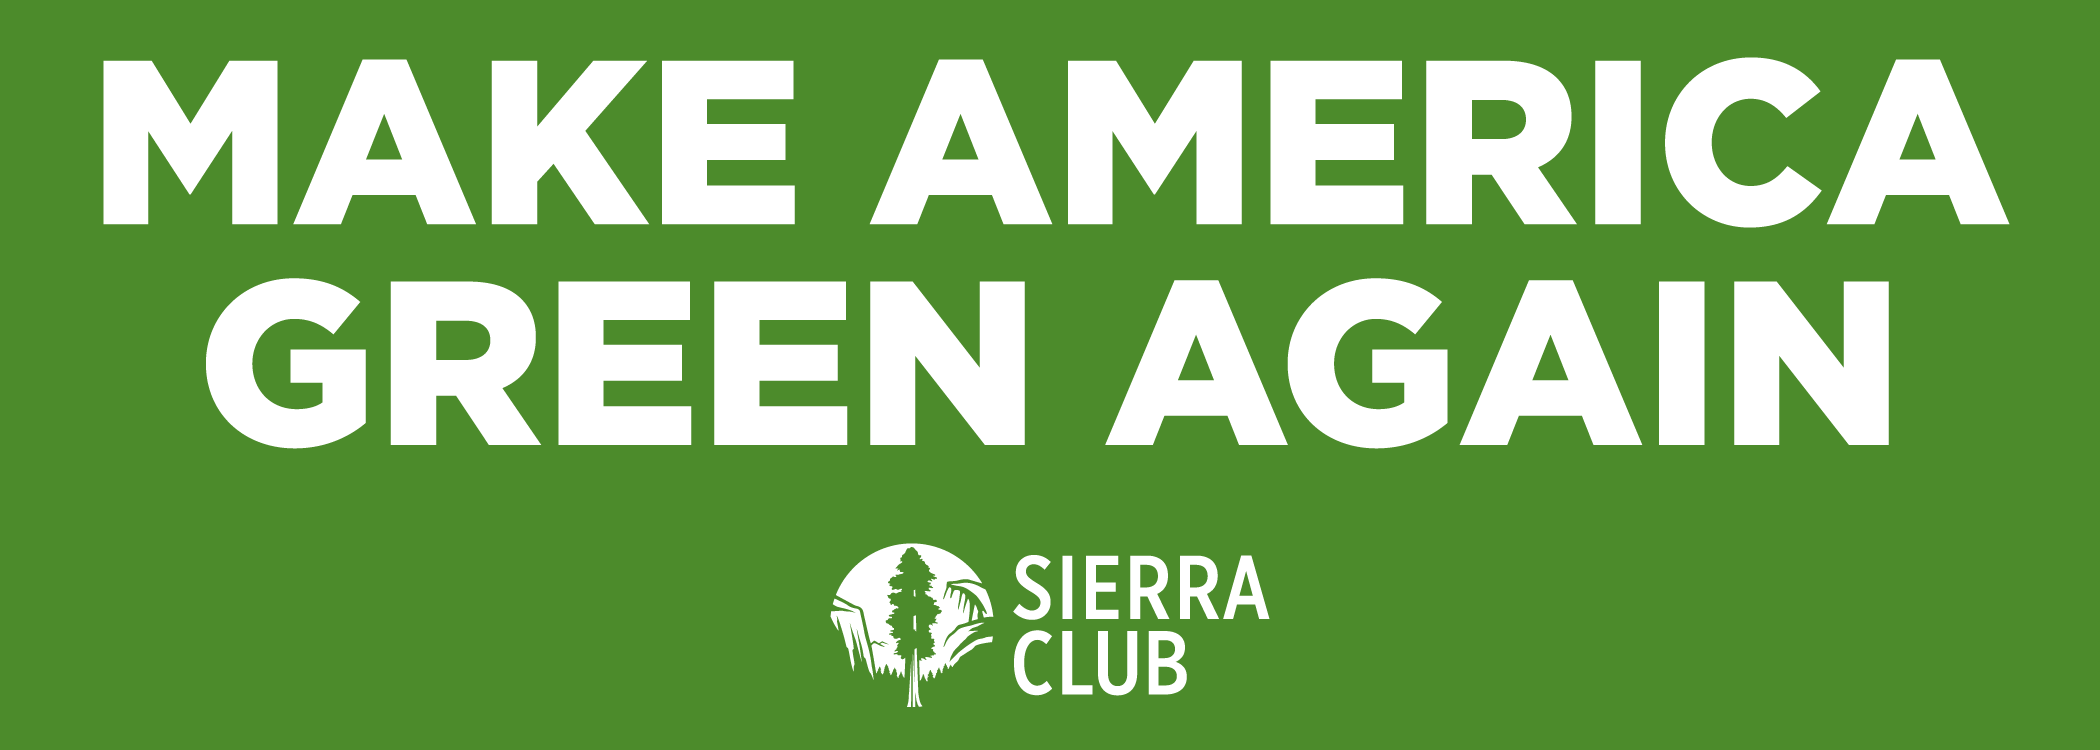 FREE Make America Green Again.